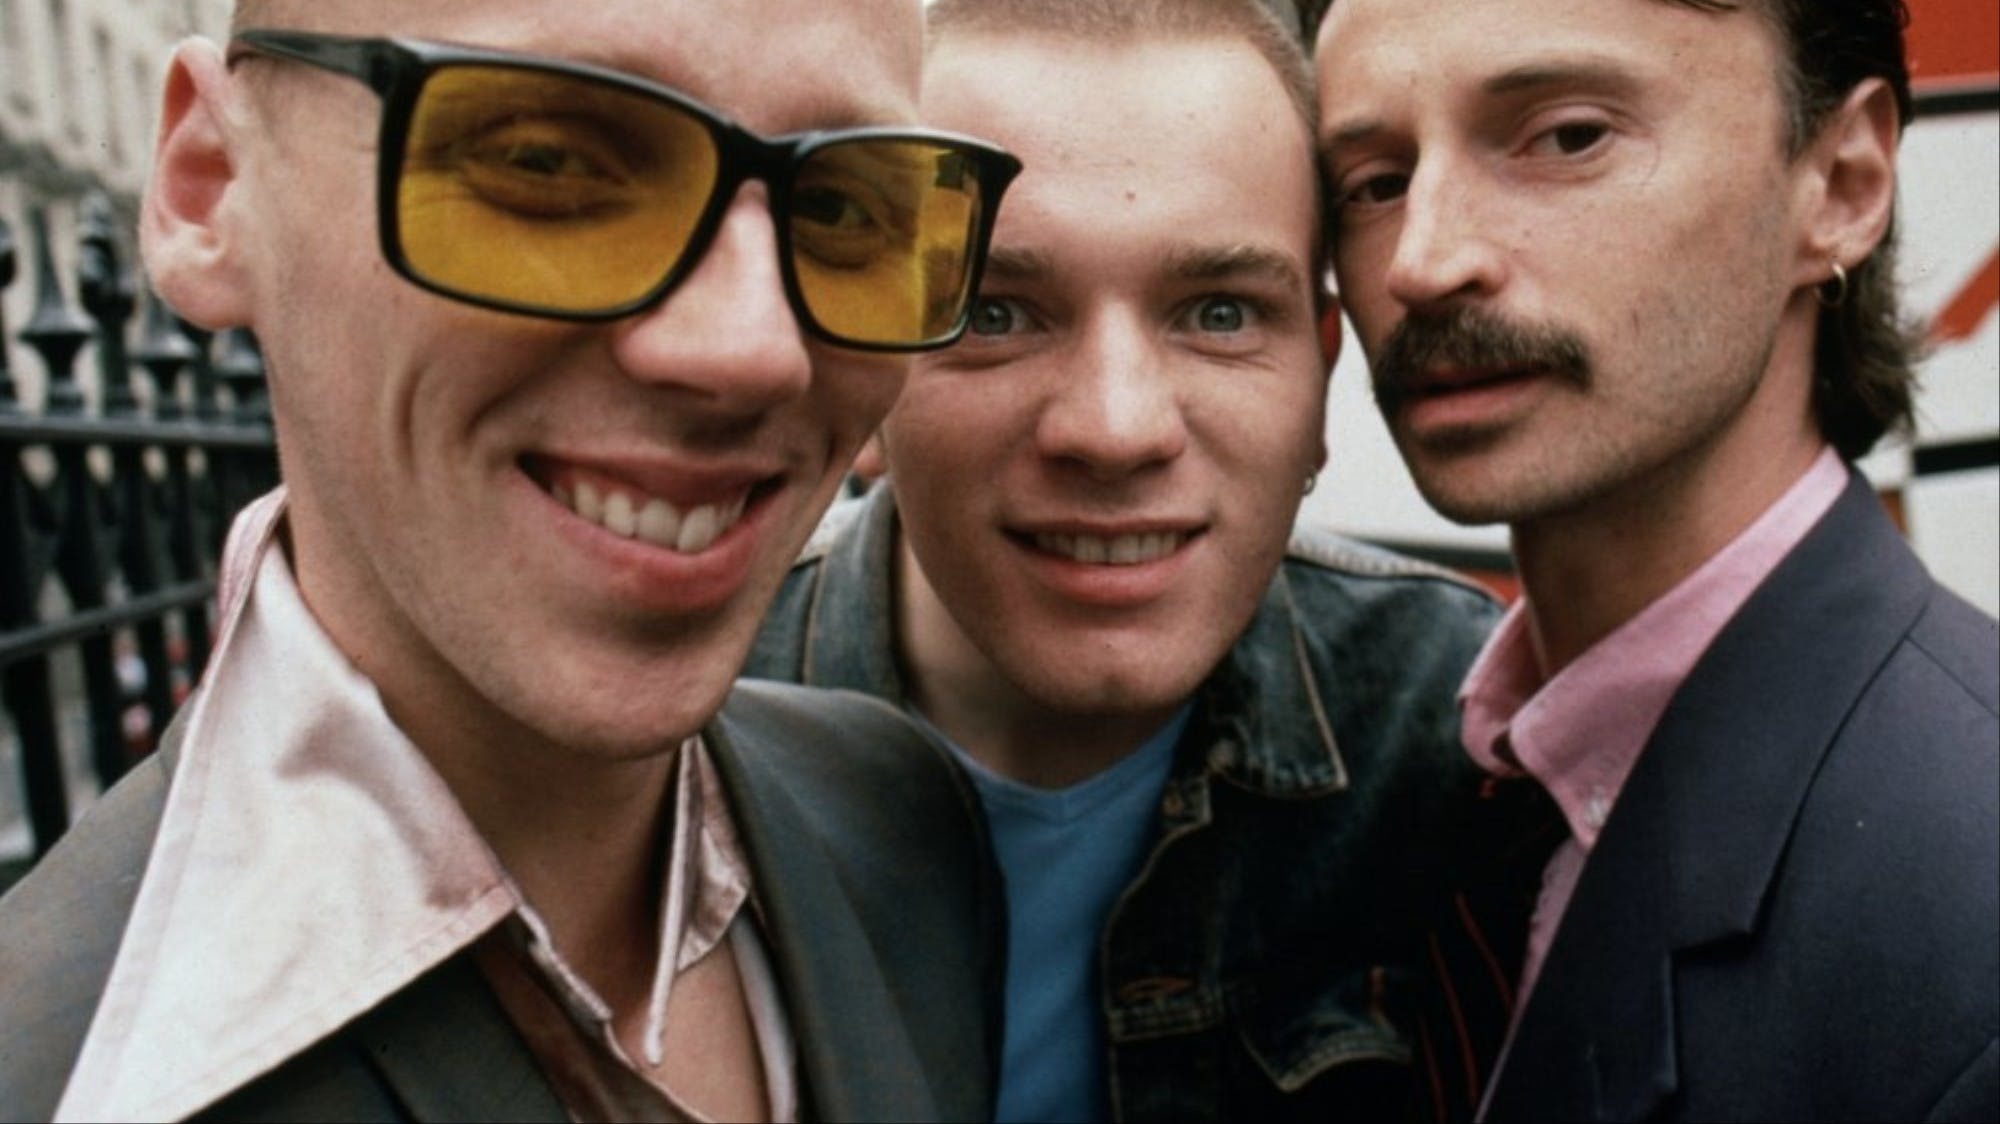 Trainspotting at 25: Not an Indie About Heroin